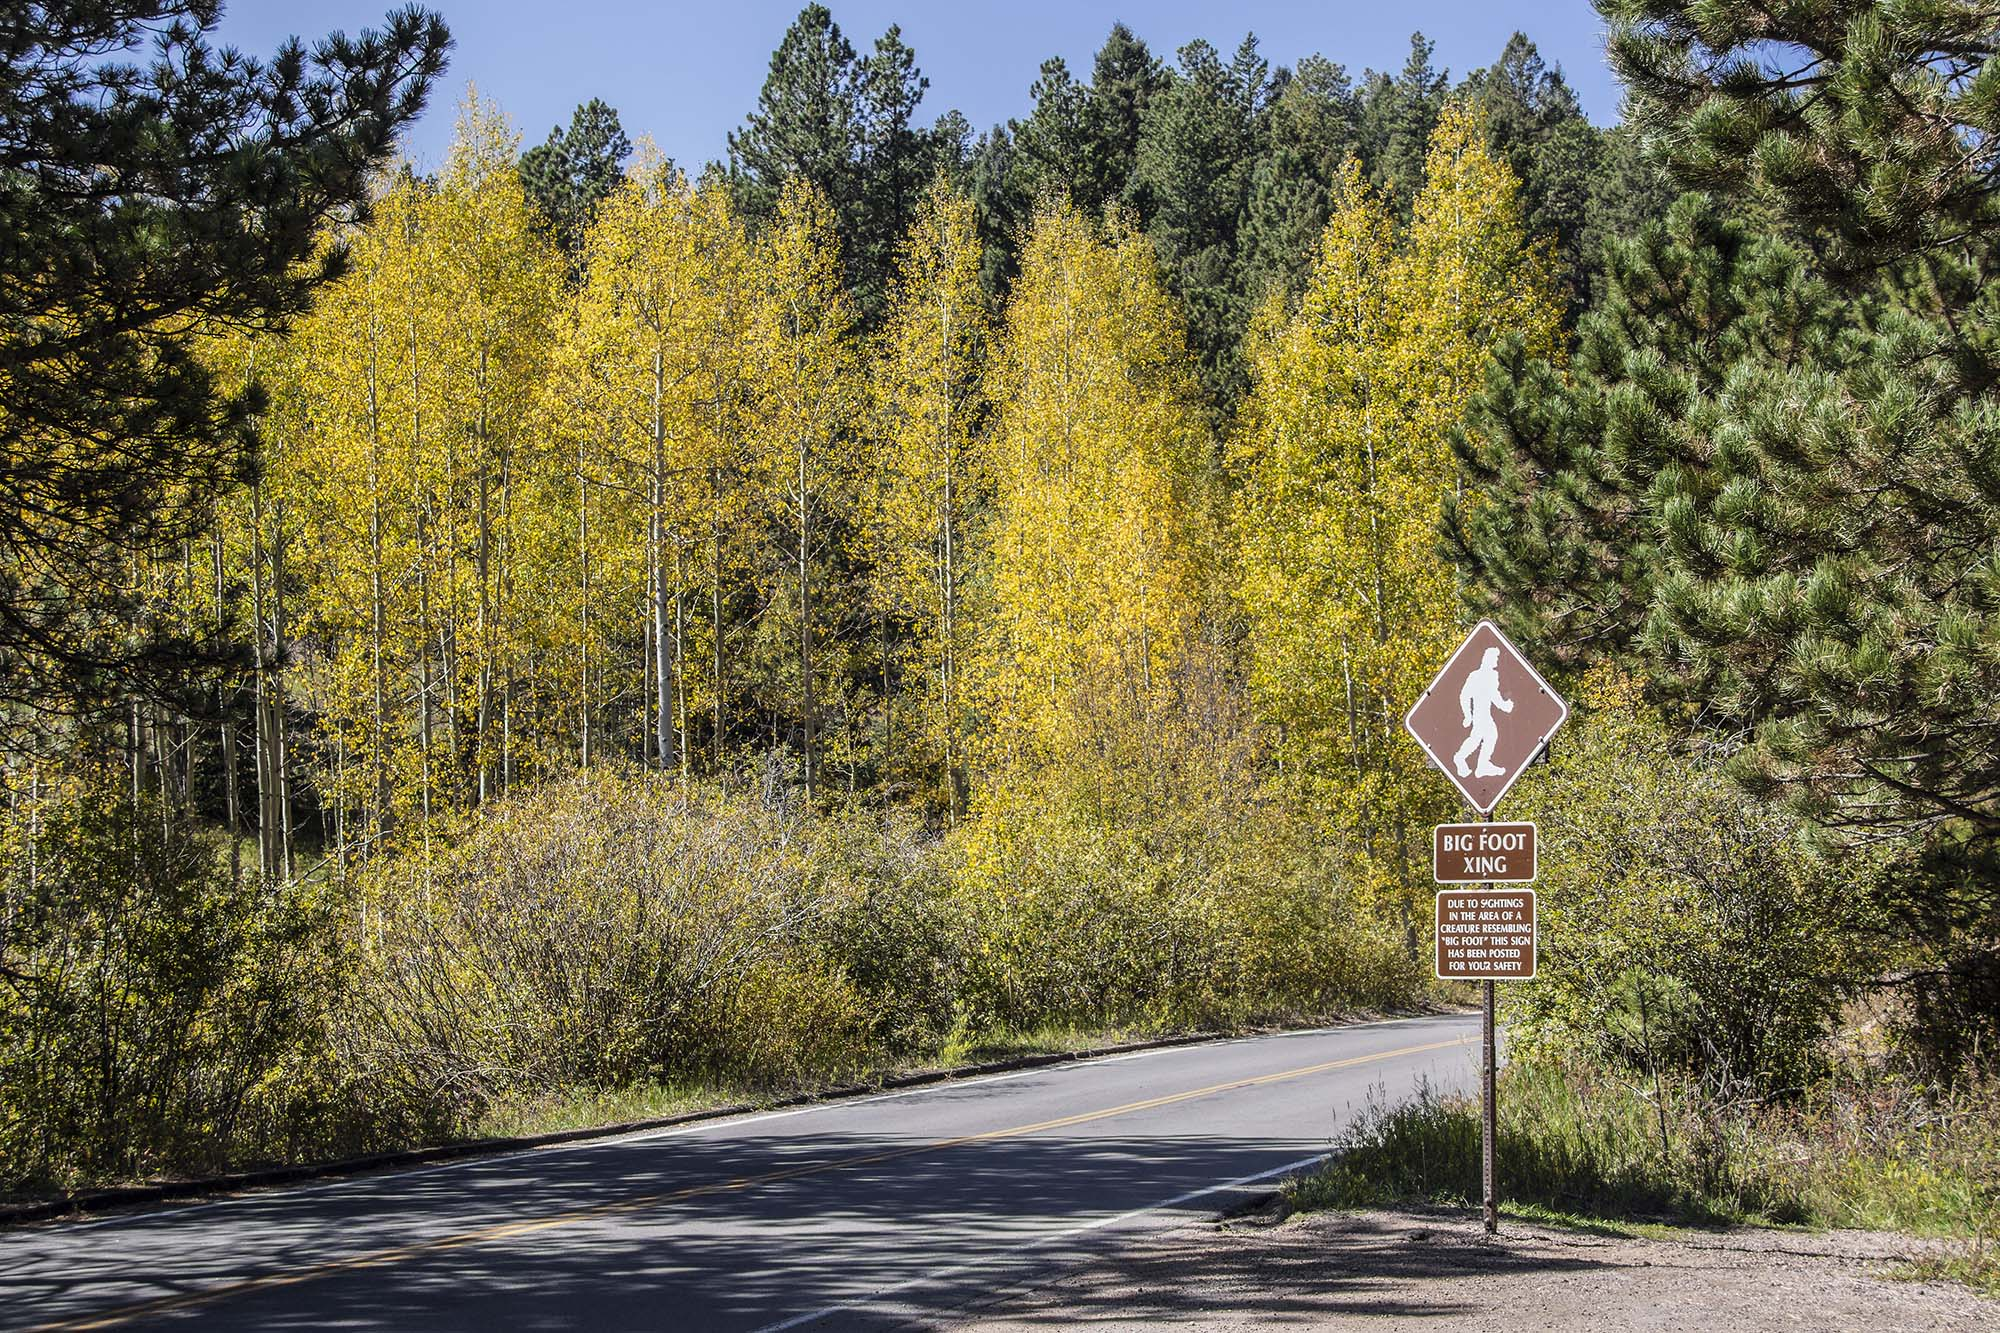 Sign posted on mountain road of Big Foot Xing for tourist safety